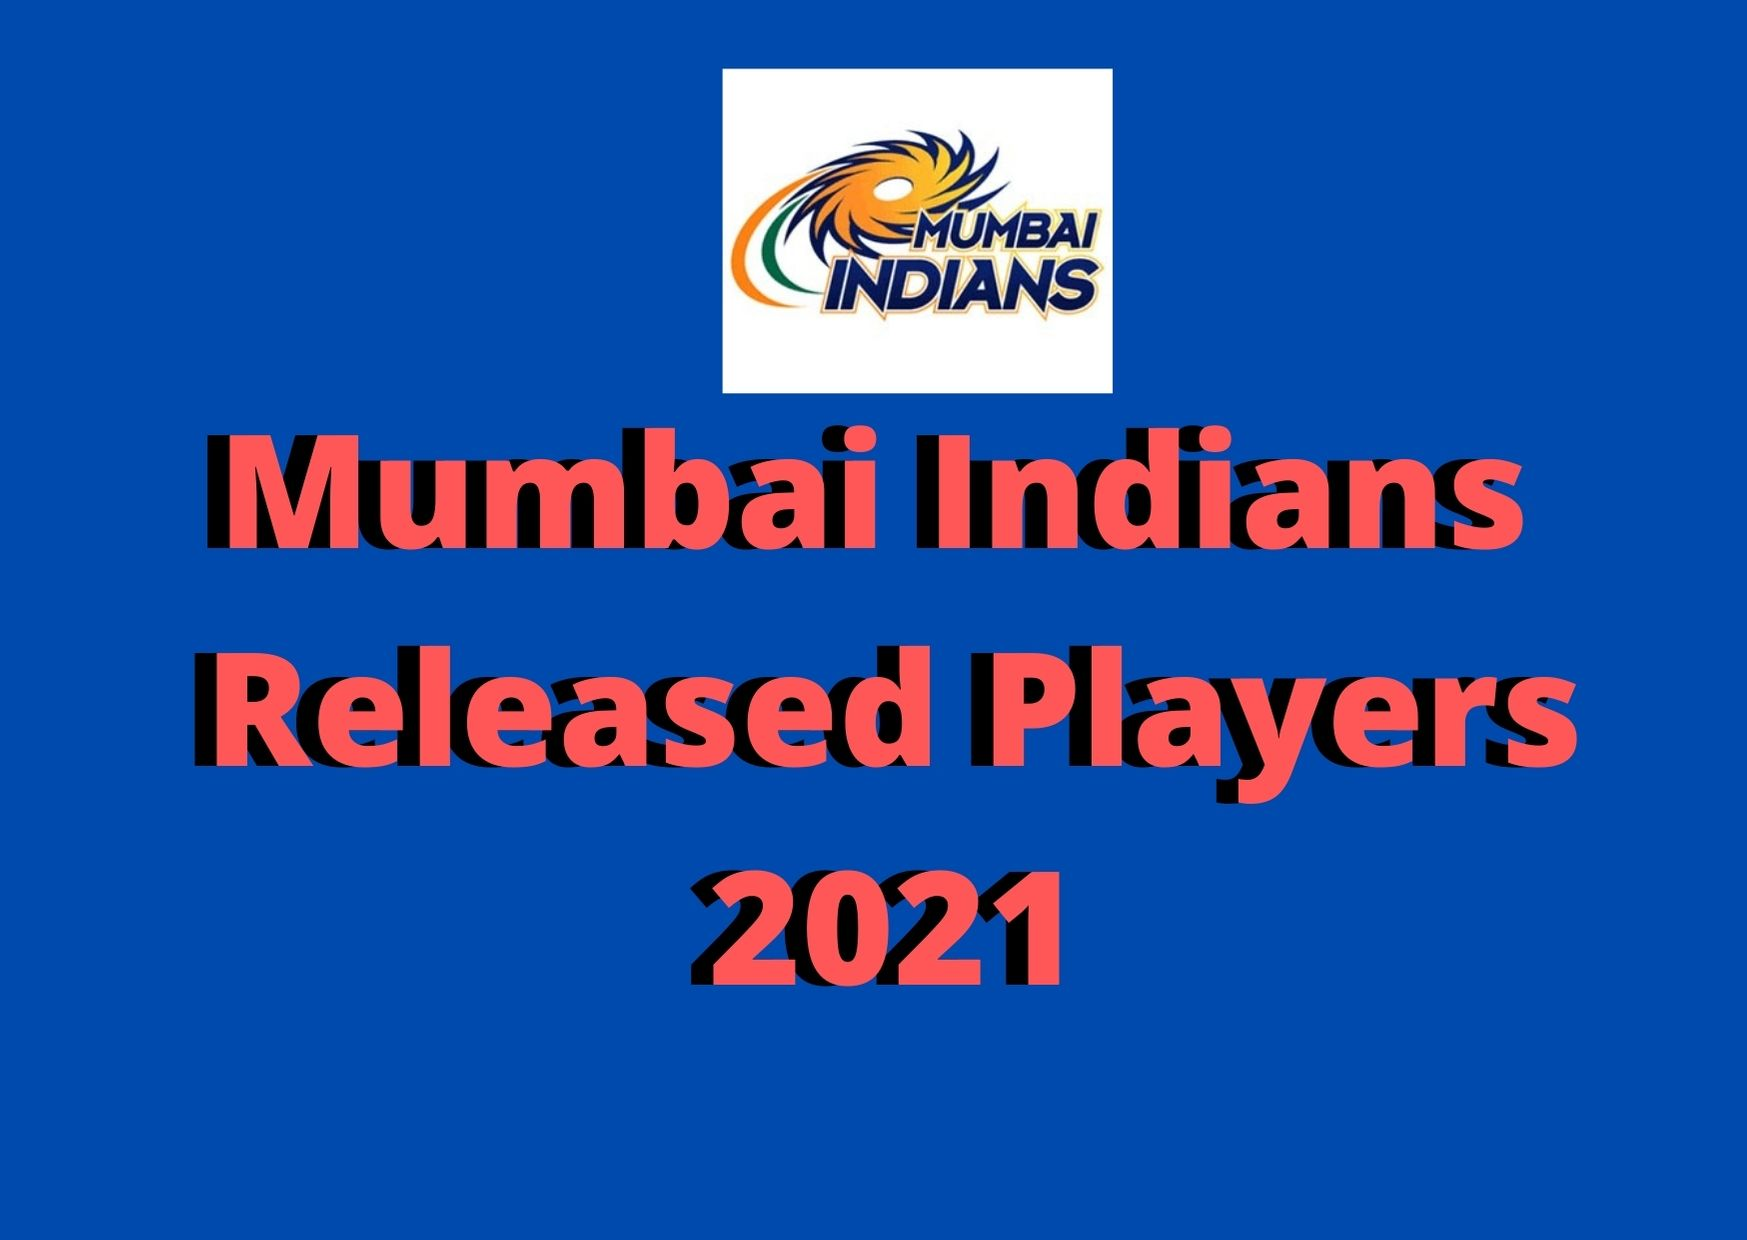 Mumbai Indians released players 2021